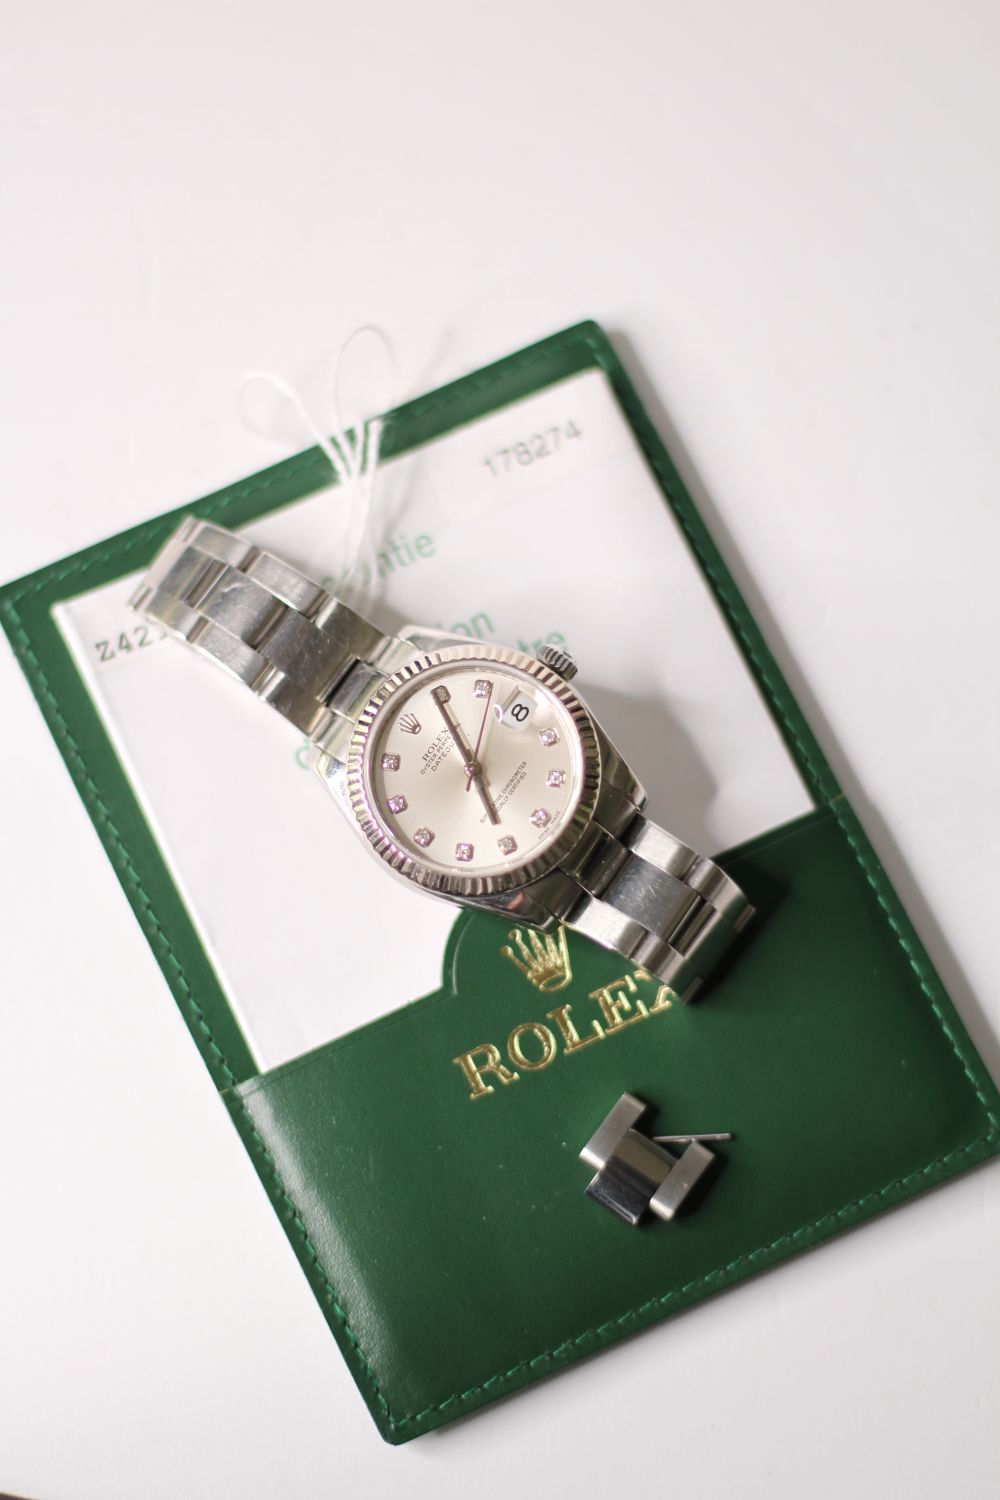 ROLEX DIAMOND DIAL DATEJUST WRISTWATCH REF 178274 W/PAPERS, circular silver dial with diamond hour - Image 3 of 5